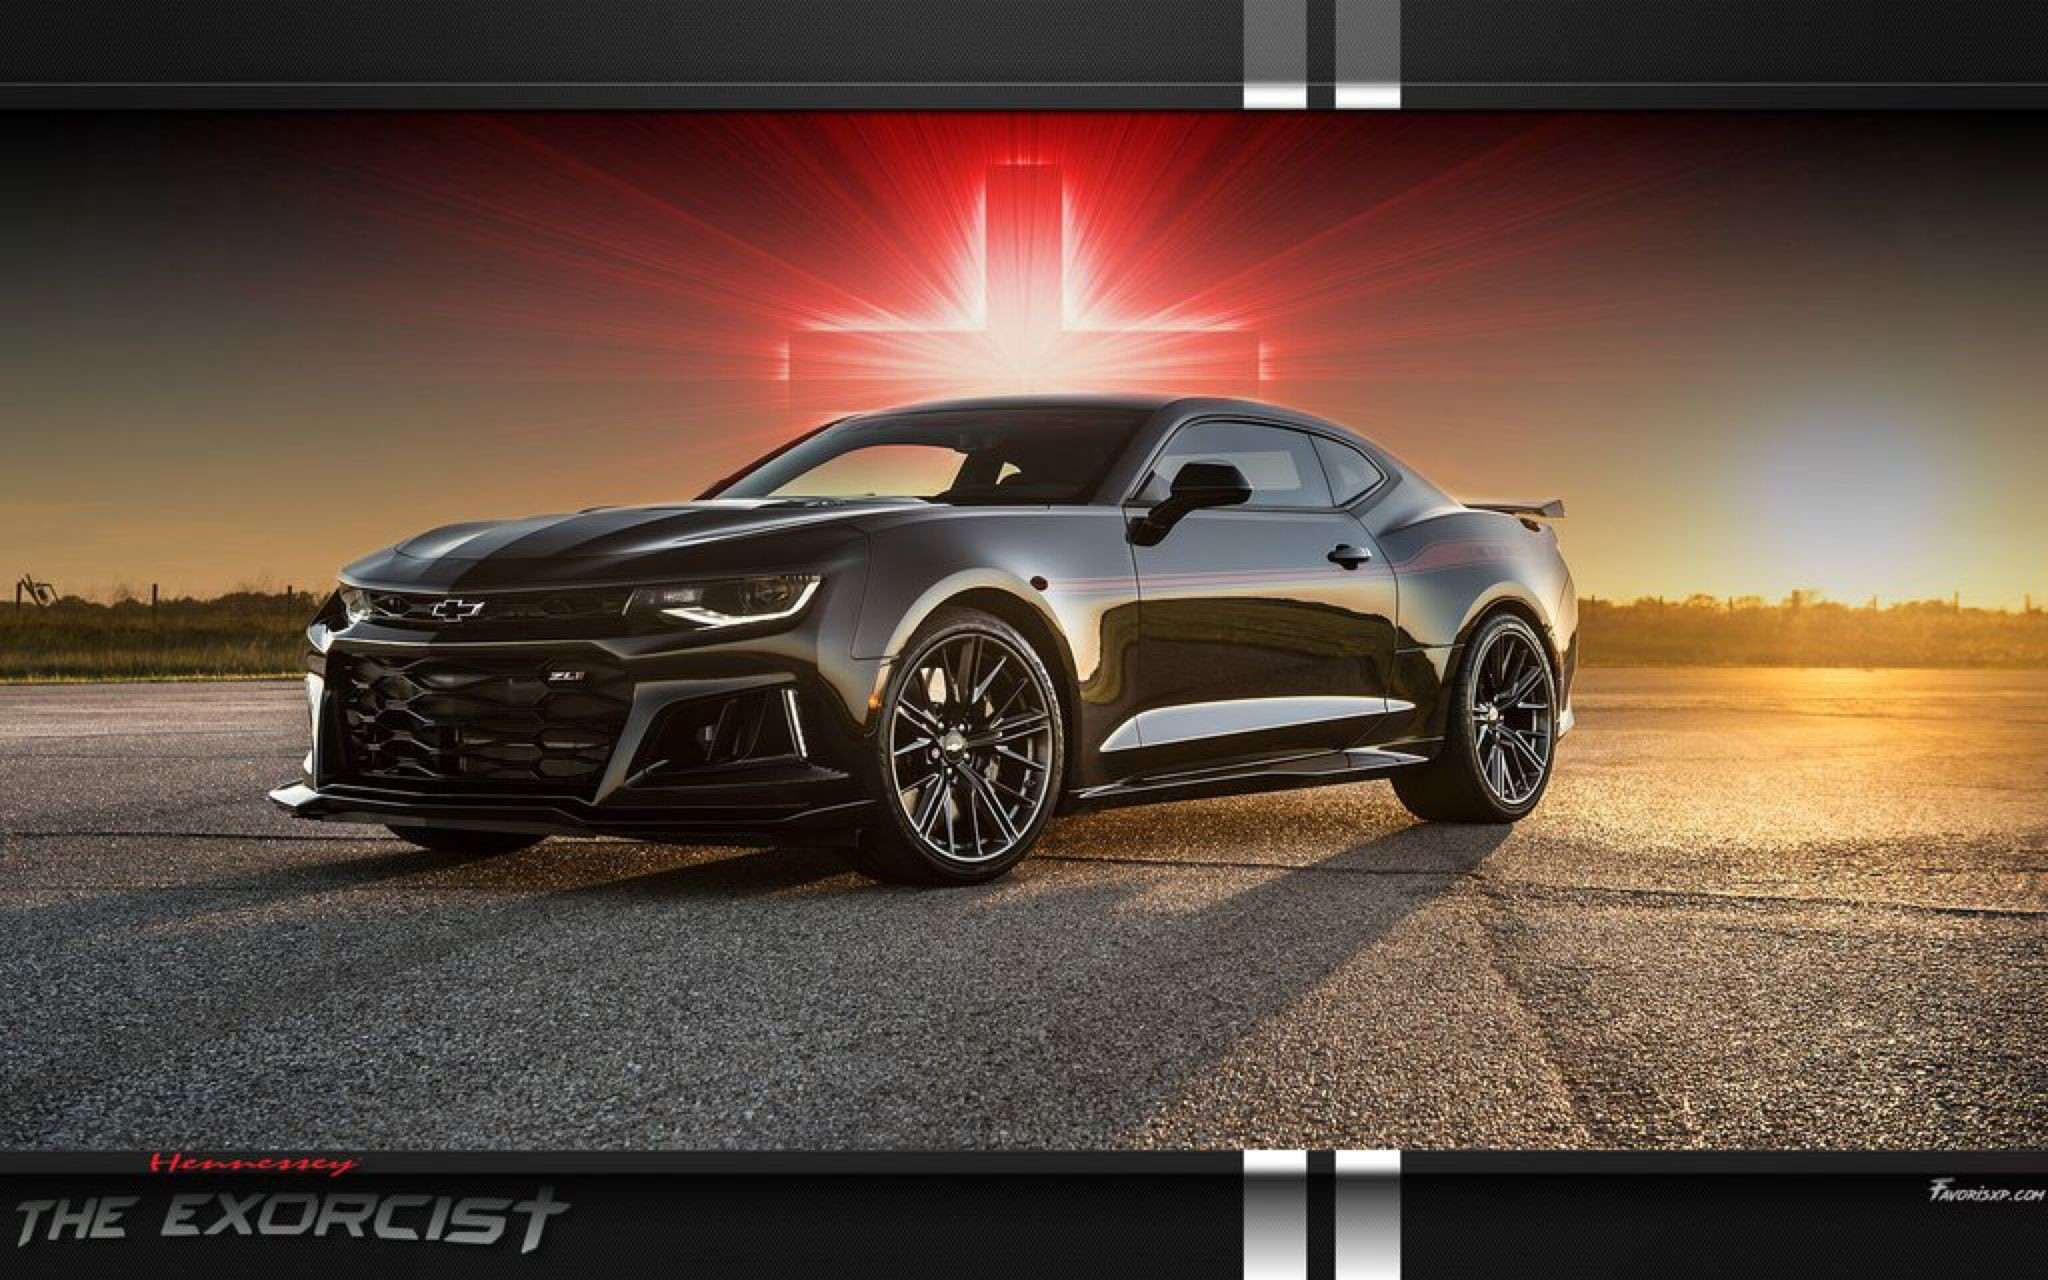 Res: 2048x1280, The Exorcist Hennessey Camaro zl1 wallpaper by favorisxp on @DeviantArt